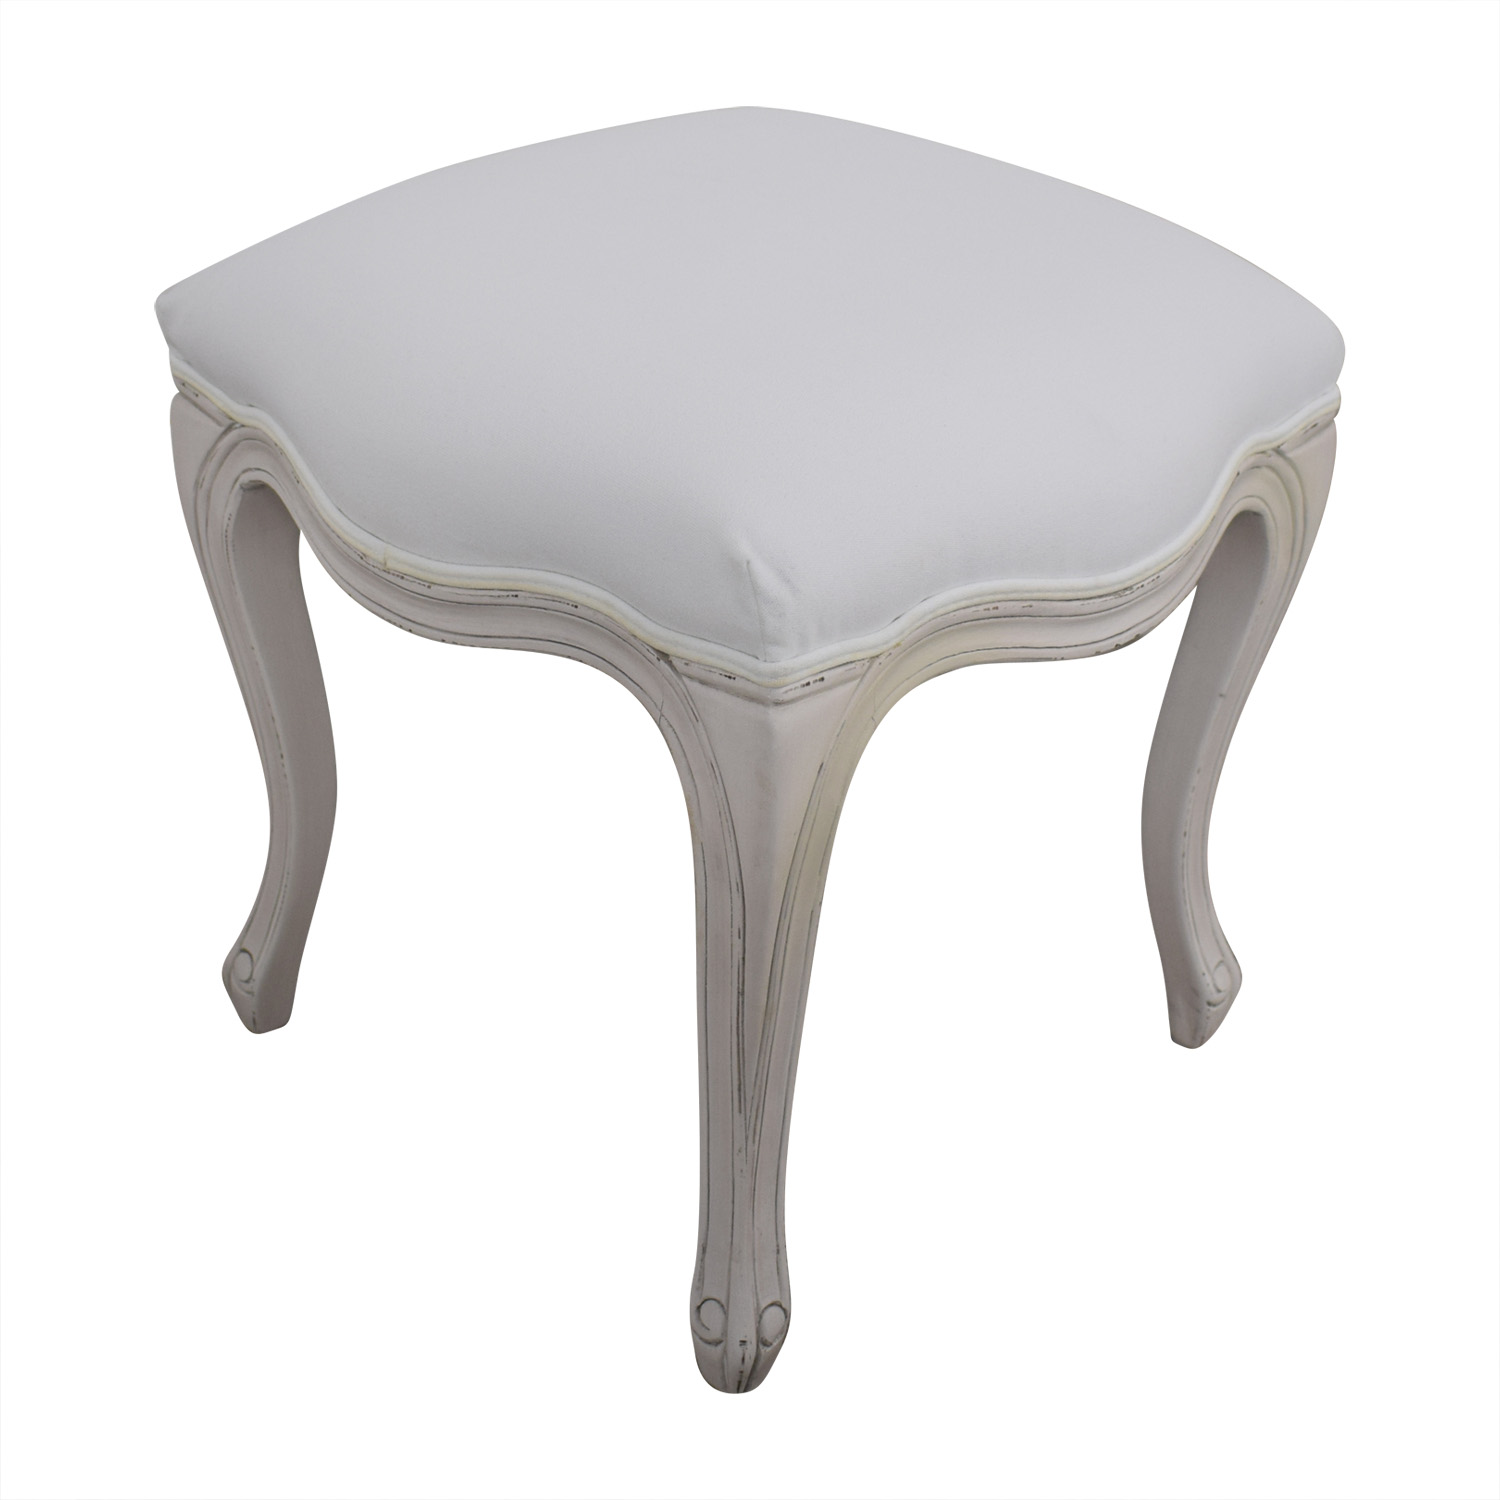 Restoration Hardware Sophie Upholstered Stool sale